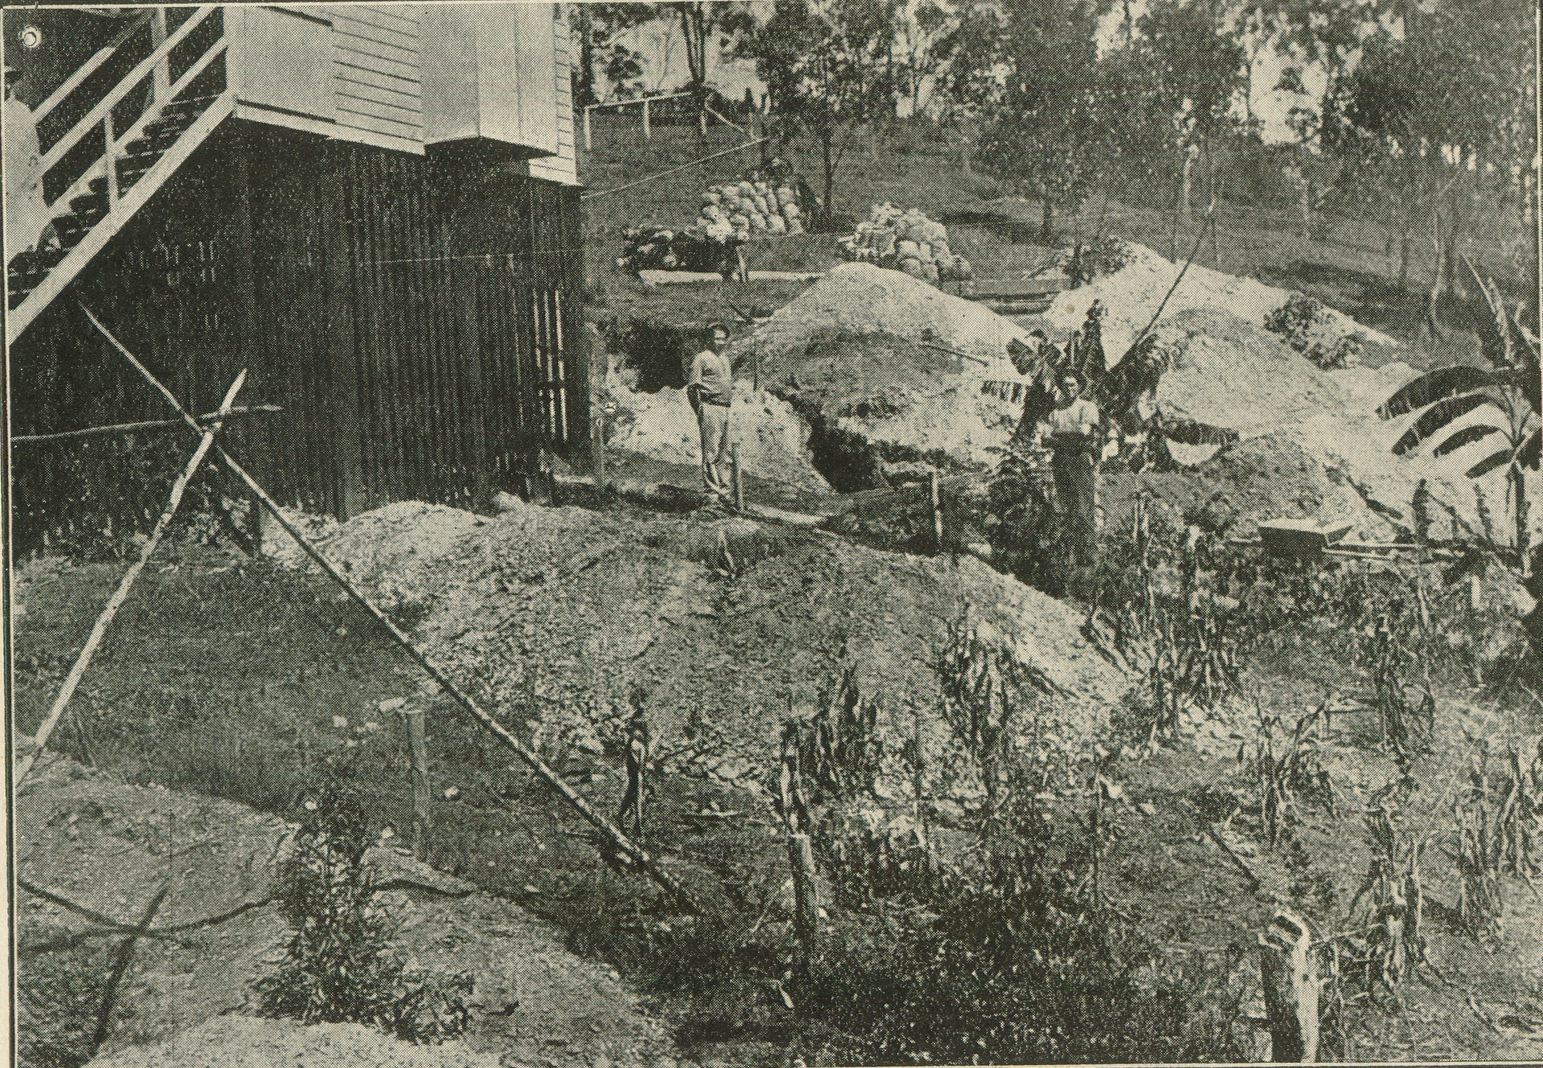 Page 28 of the  Queenslander Pictorial , Supplement to  The Queenslander , 25 January, 1919. The silver mine at Indooroopilly.